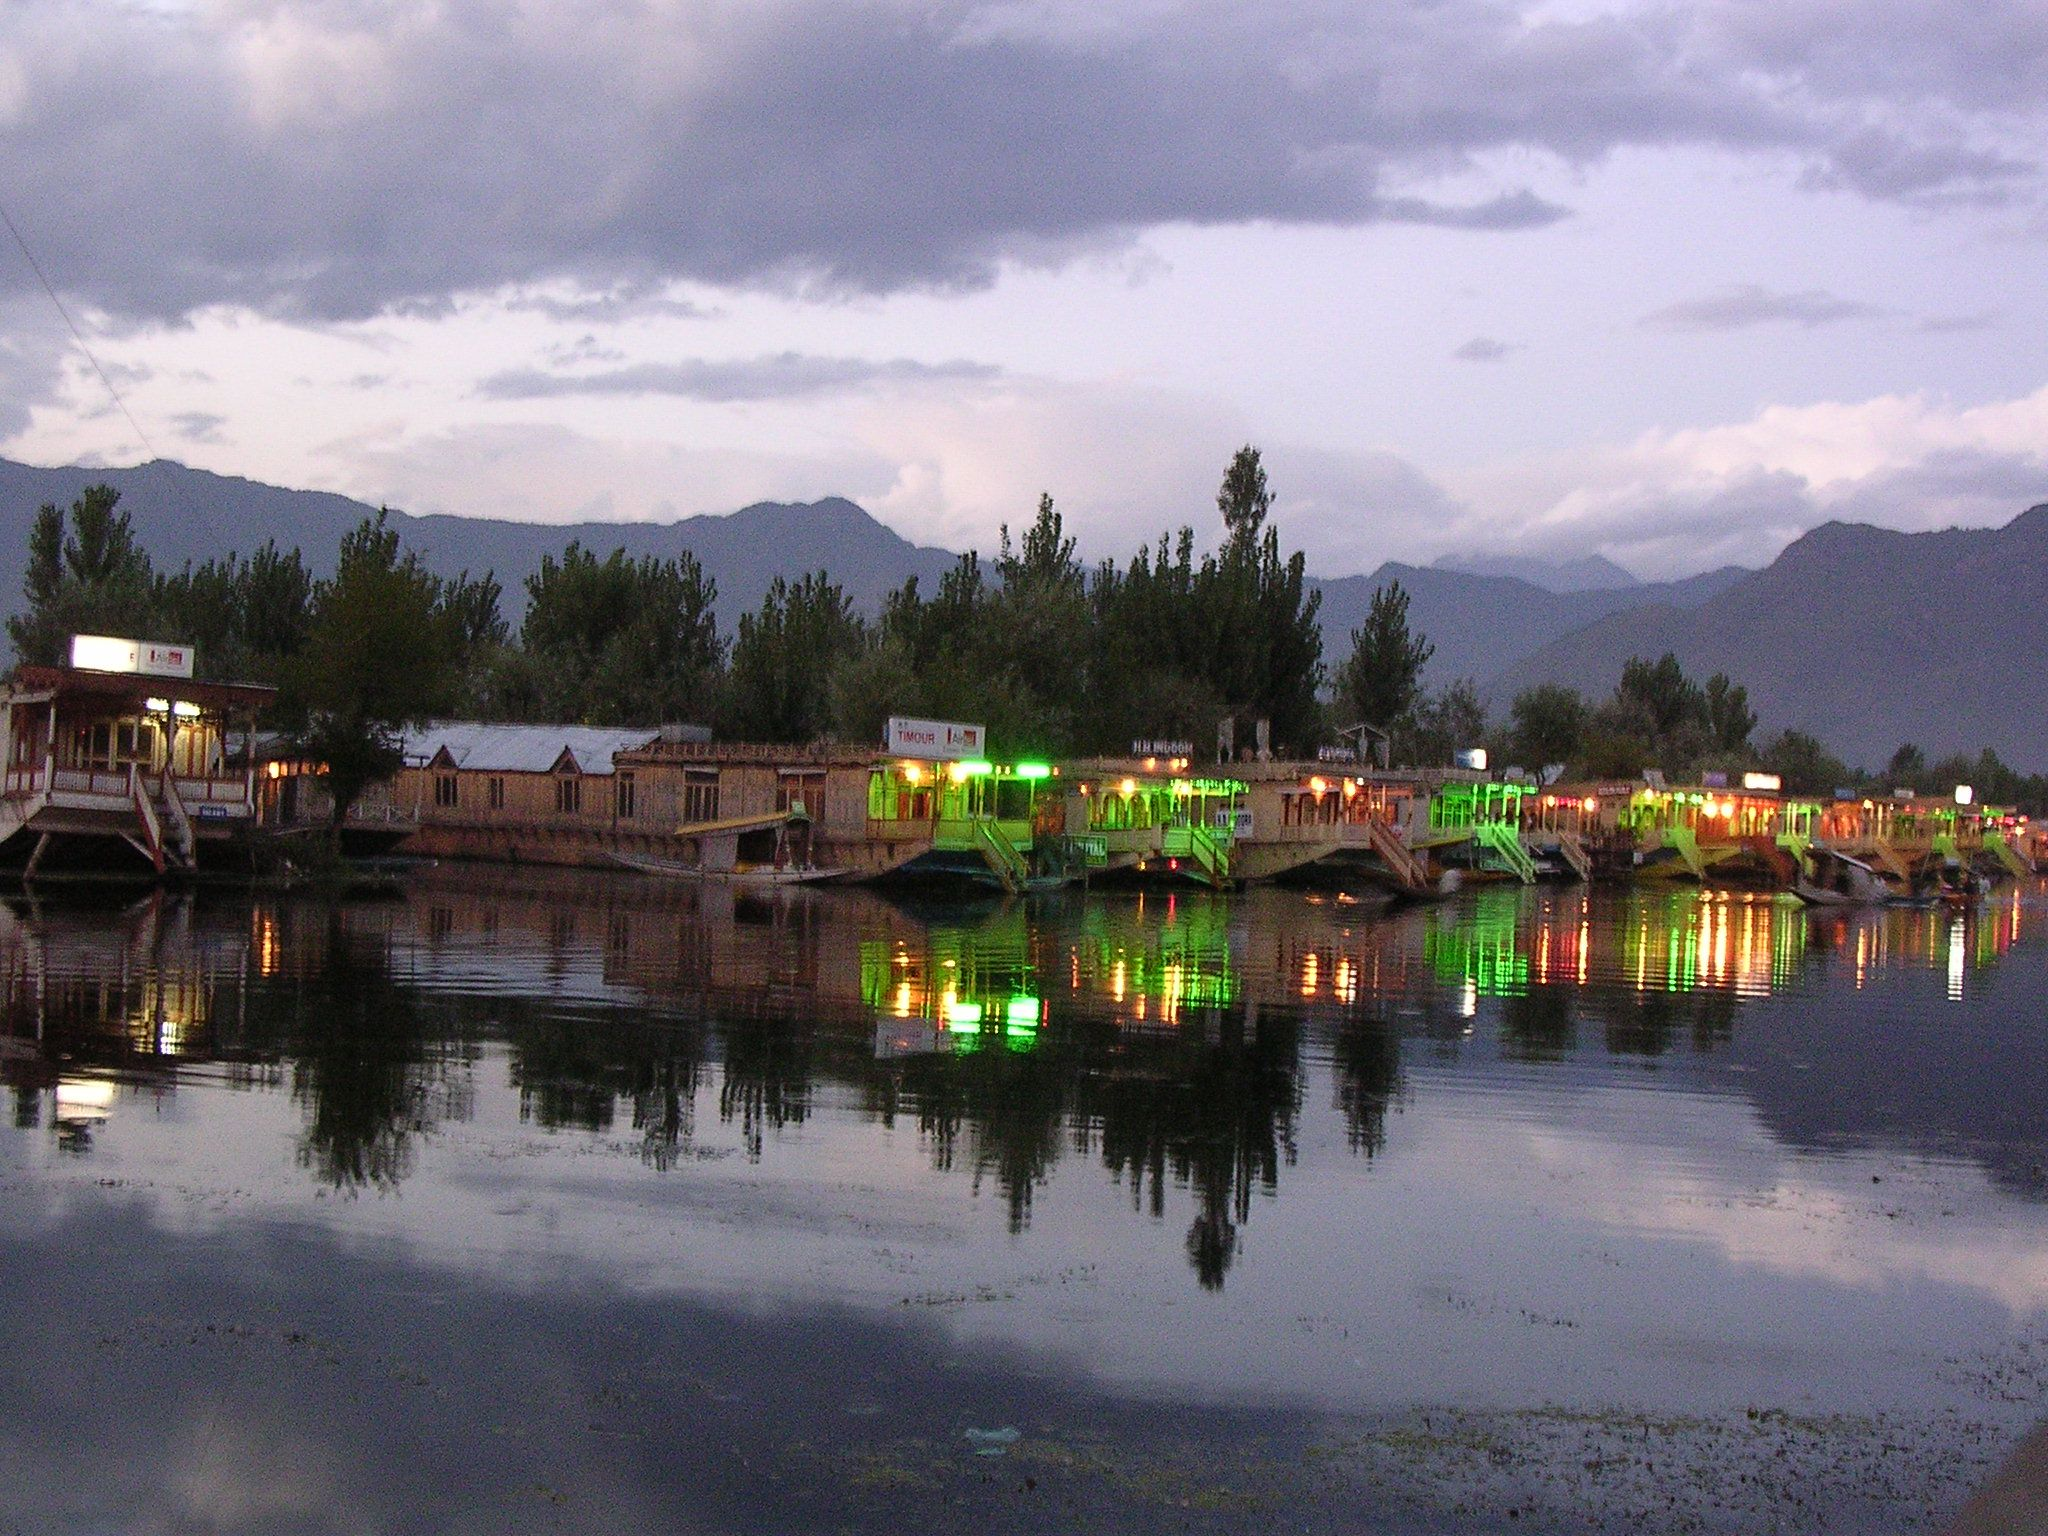 Hd wallpaper kashmir - Sirinagar Wallpapers Very Beautiful And Much Interesting Lovely Lake Sirinagar Wallpapers Background Image